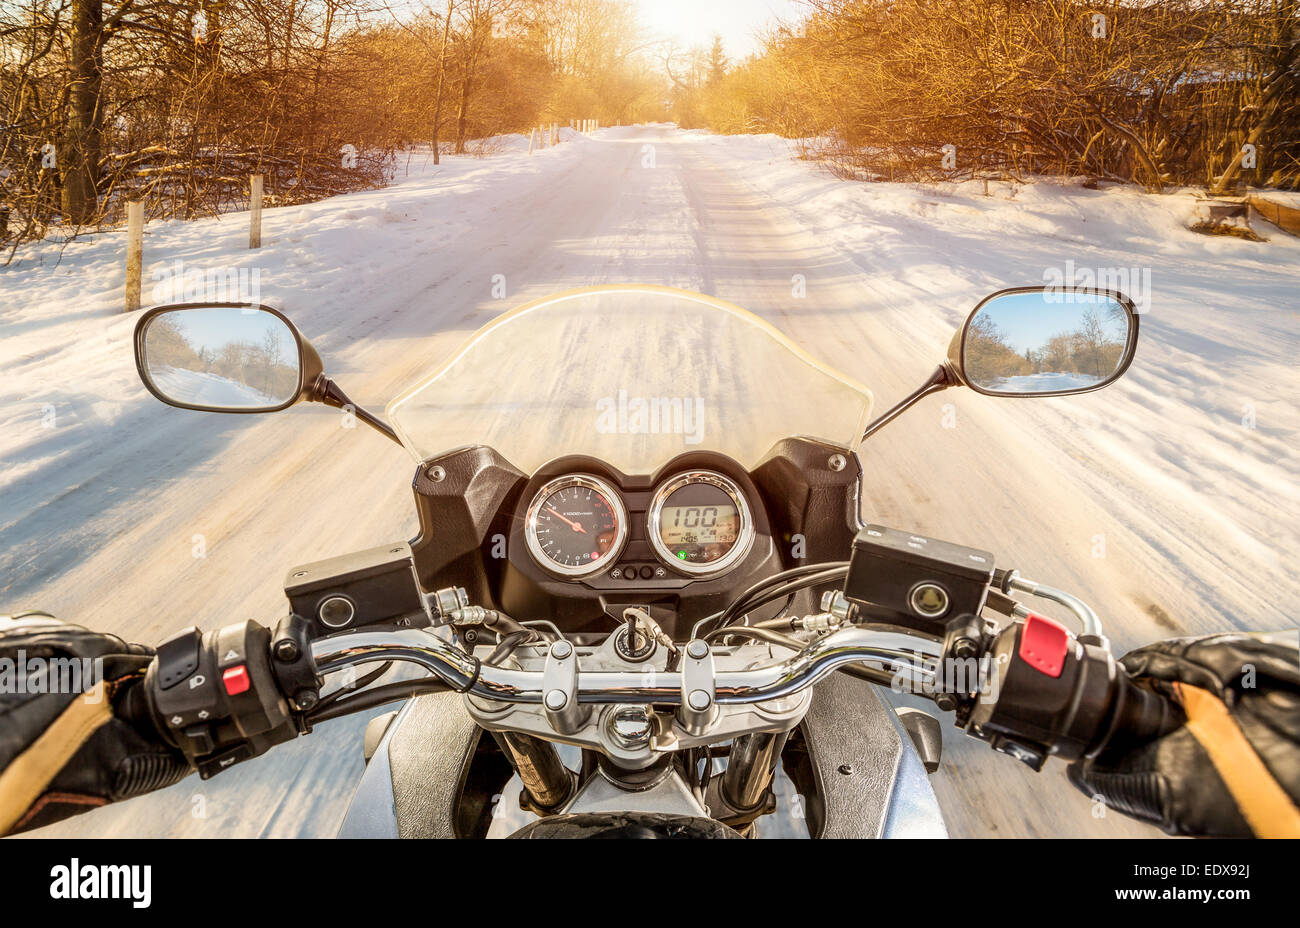 Biker rides on winter slippery road. First-person view. - Stock Image